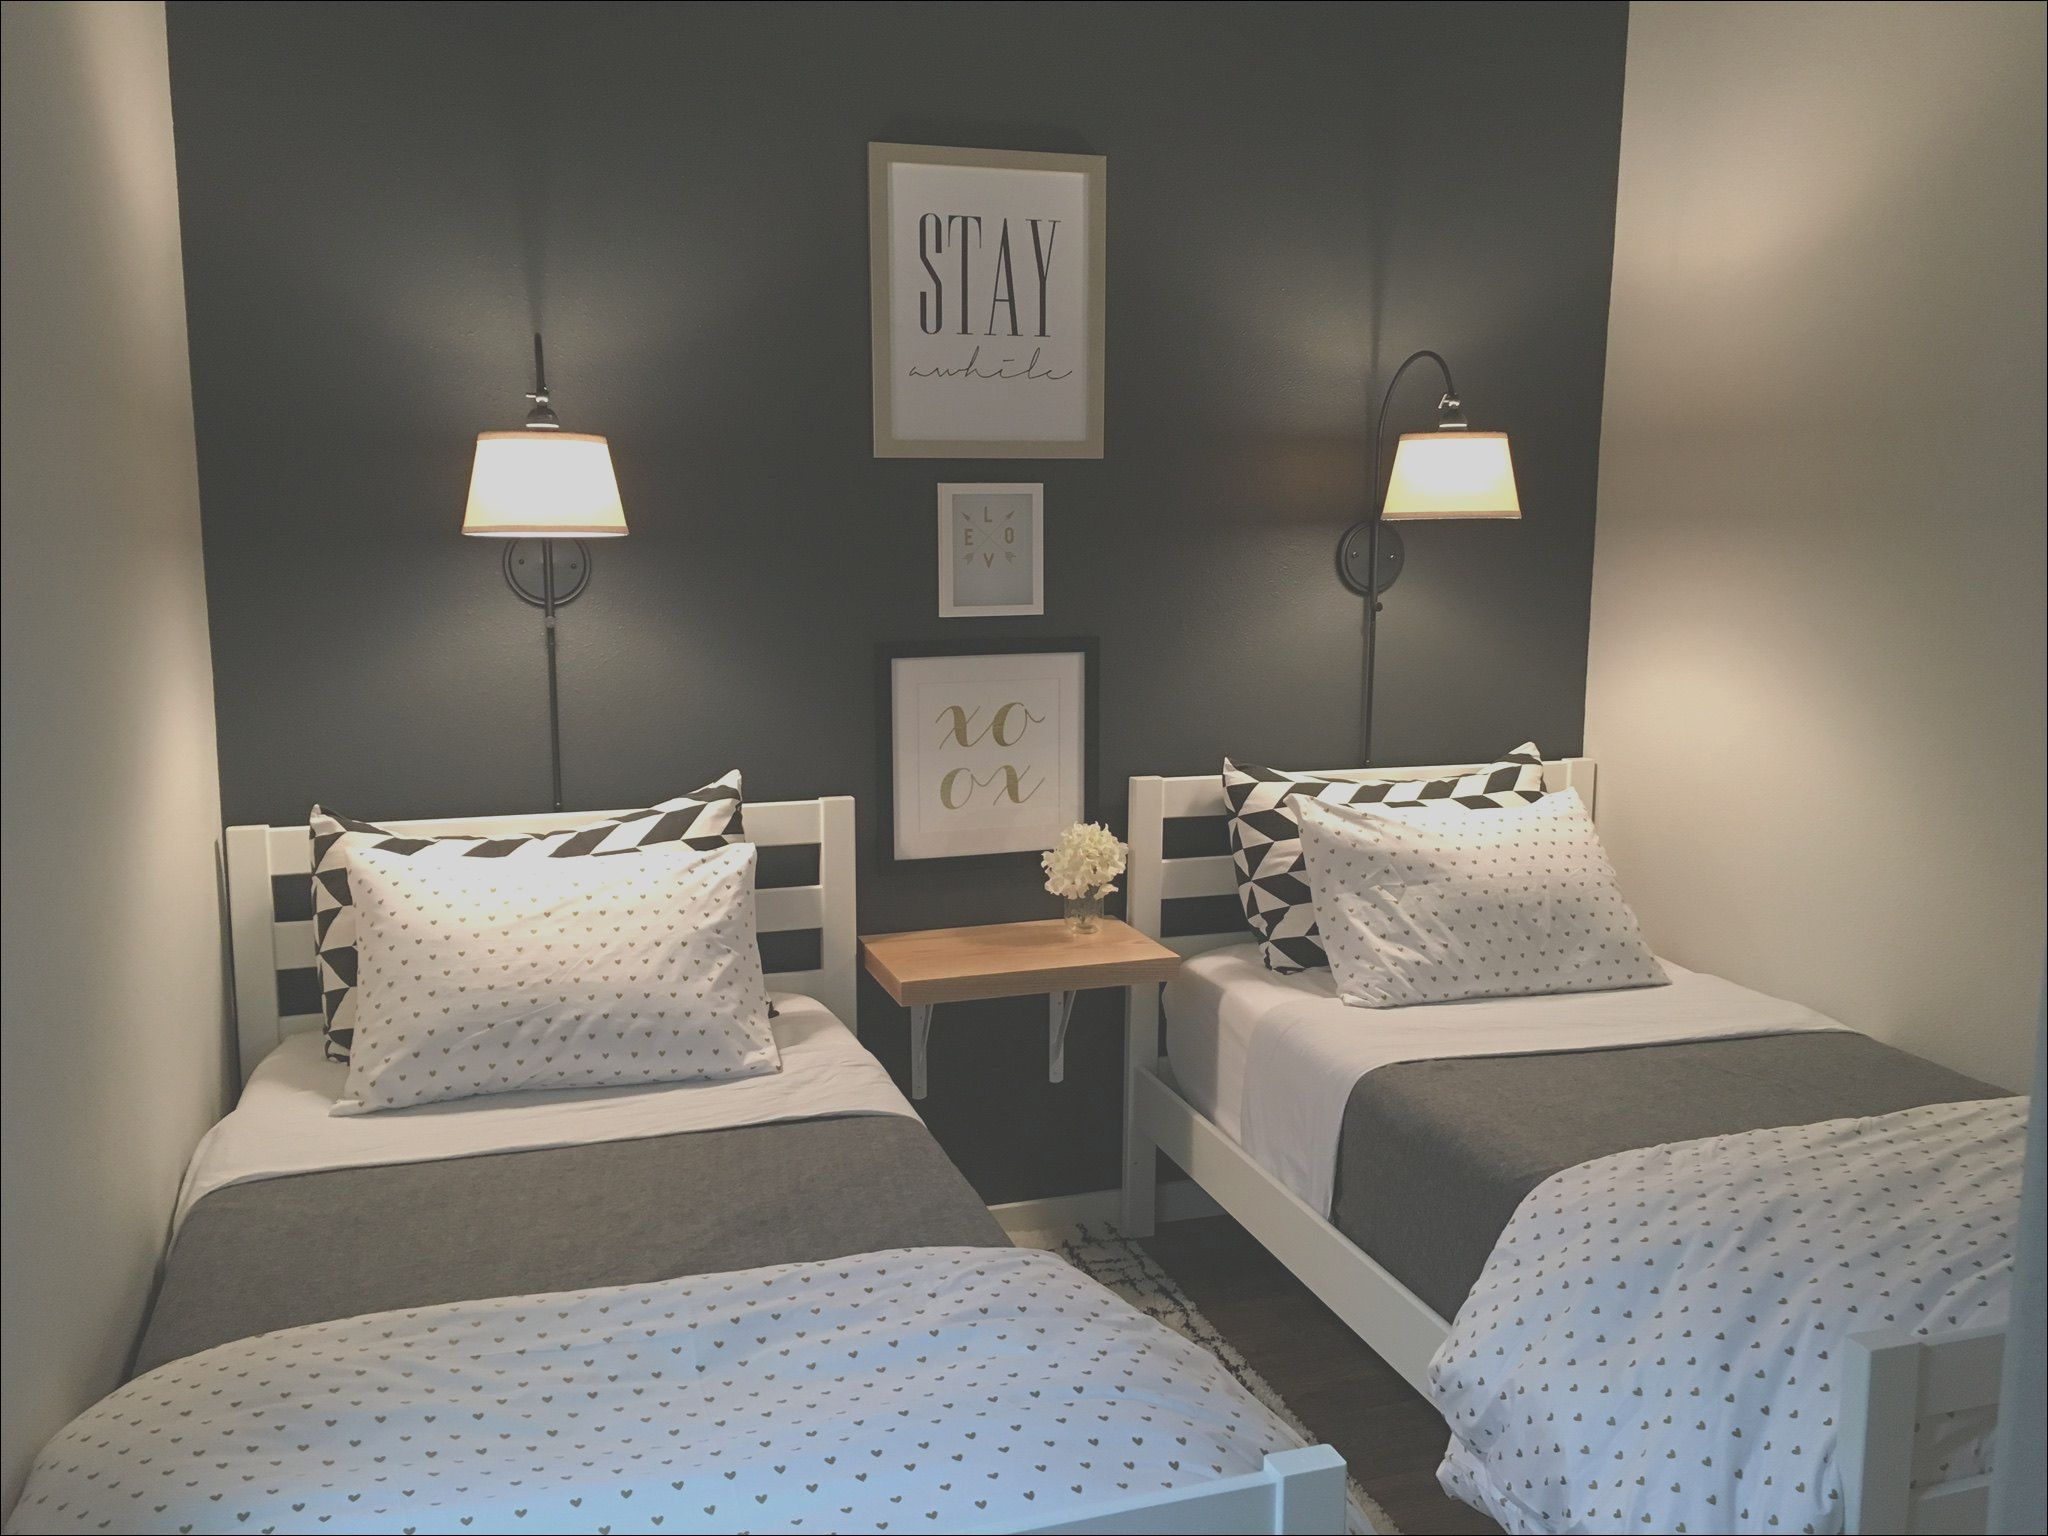 Small Guest Room With Two Twin Beds In 2020 Small Guest Rooms Bedroom Design Diy Grey Walls Living Room #twin #bed #in #living #room